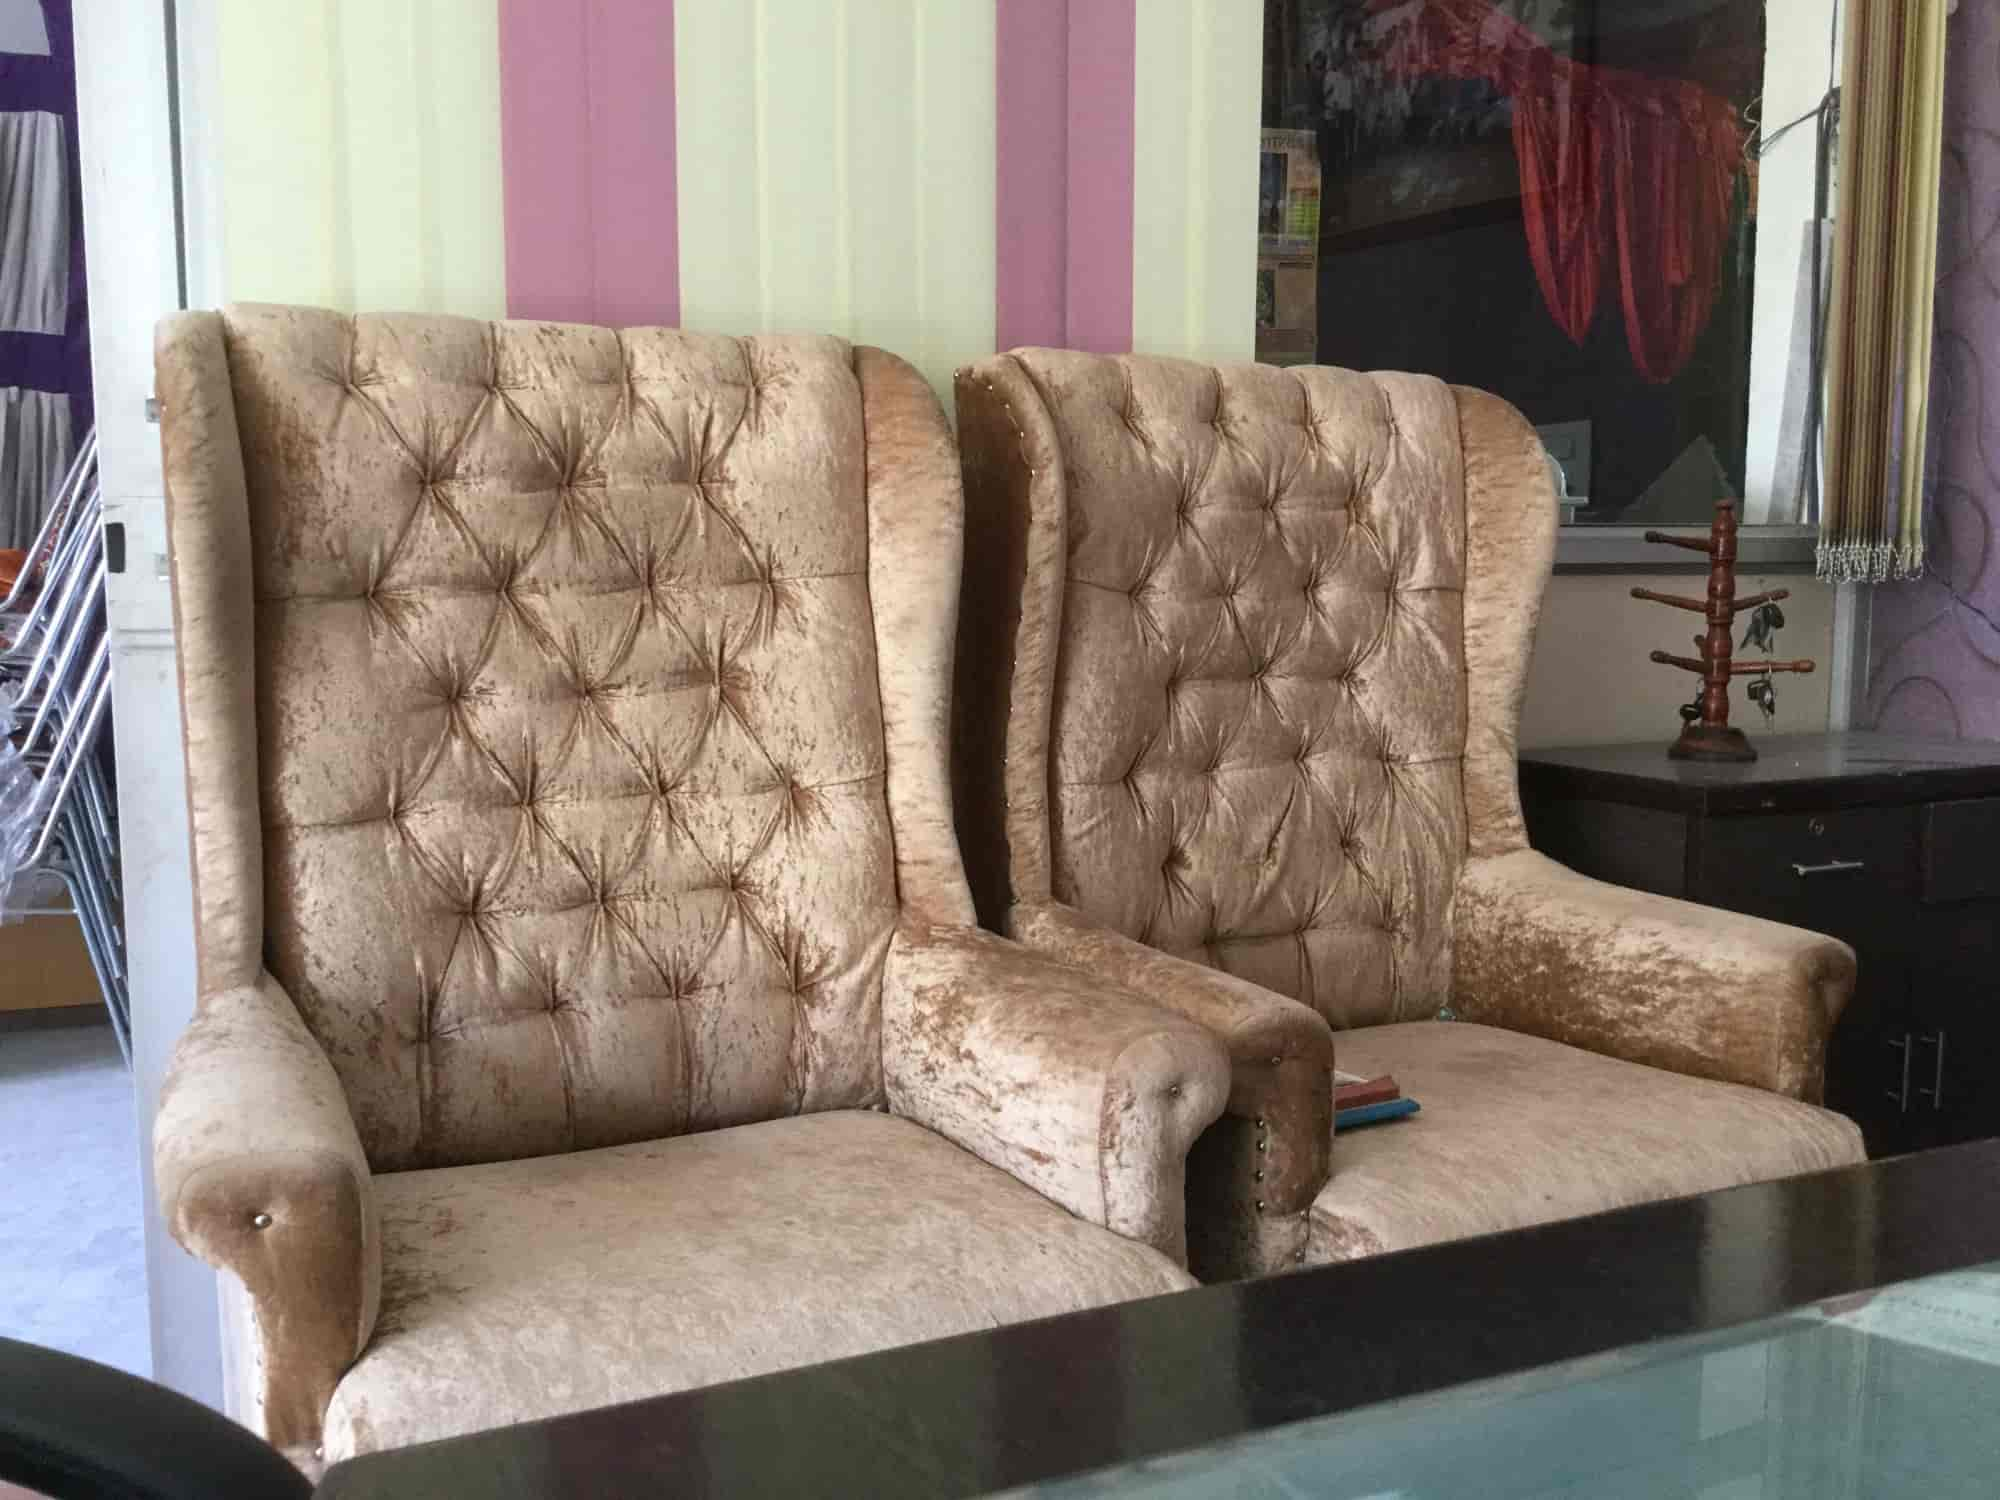 B M Tent Light Services Photos, Baltana, Zirakpur- Pictures & Images Chaise Longue B M on chaise recliner chair, chaise furniture, chaise sofa sleeper,